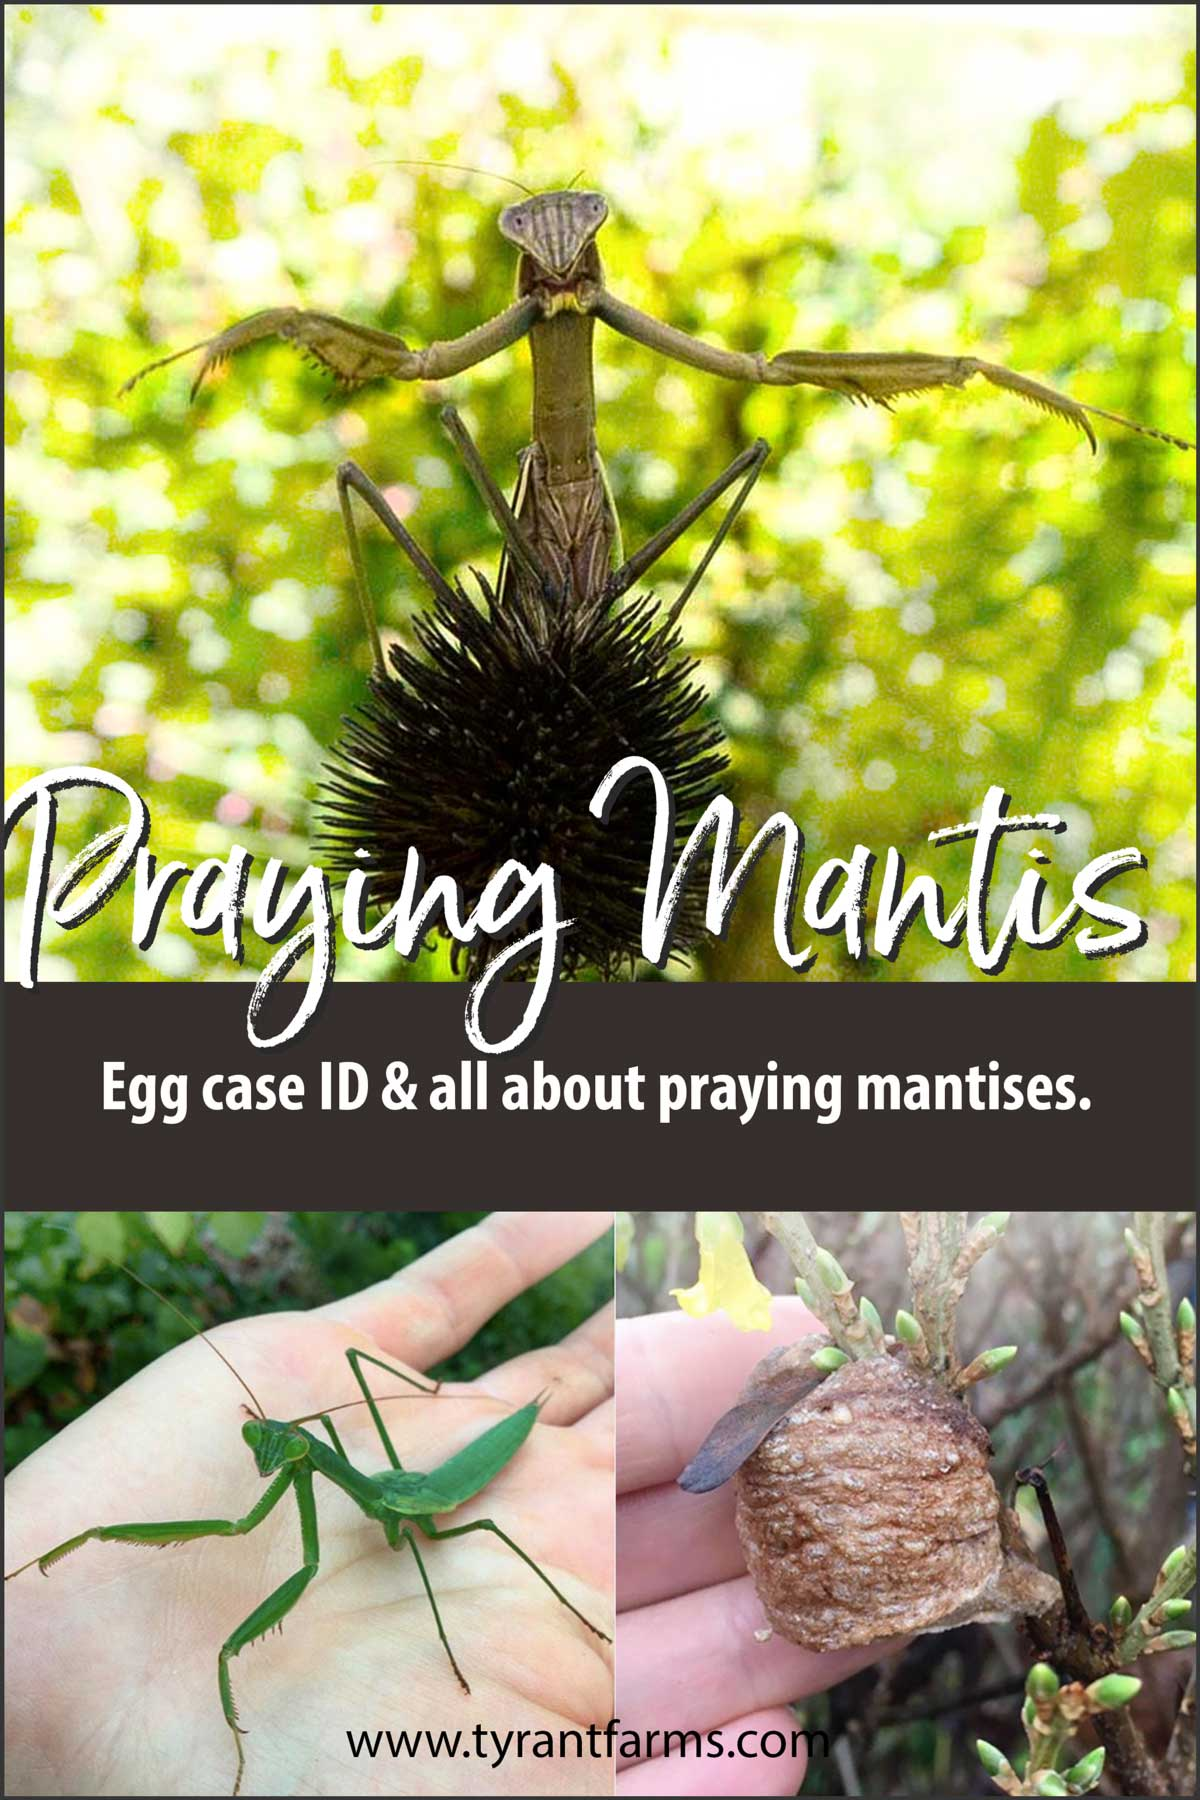 Learn all about praying mantises, including what their egg cases (oothecae) look like. Praying mantises are a popular predatory insect common in home gardens and wild habitats alike.